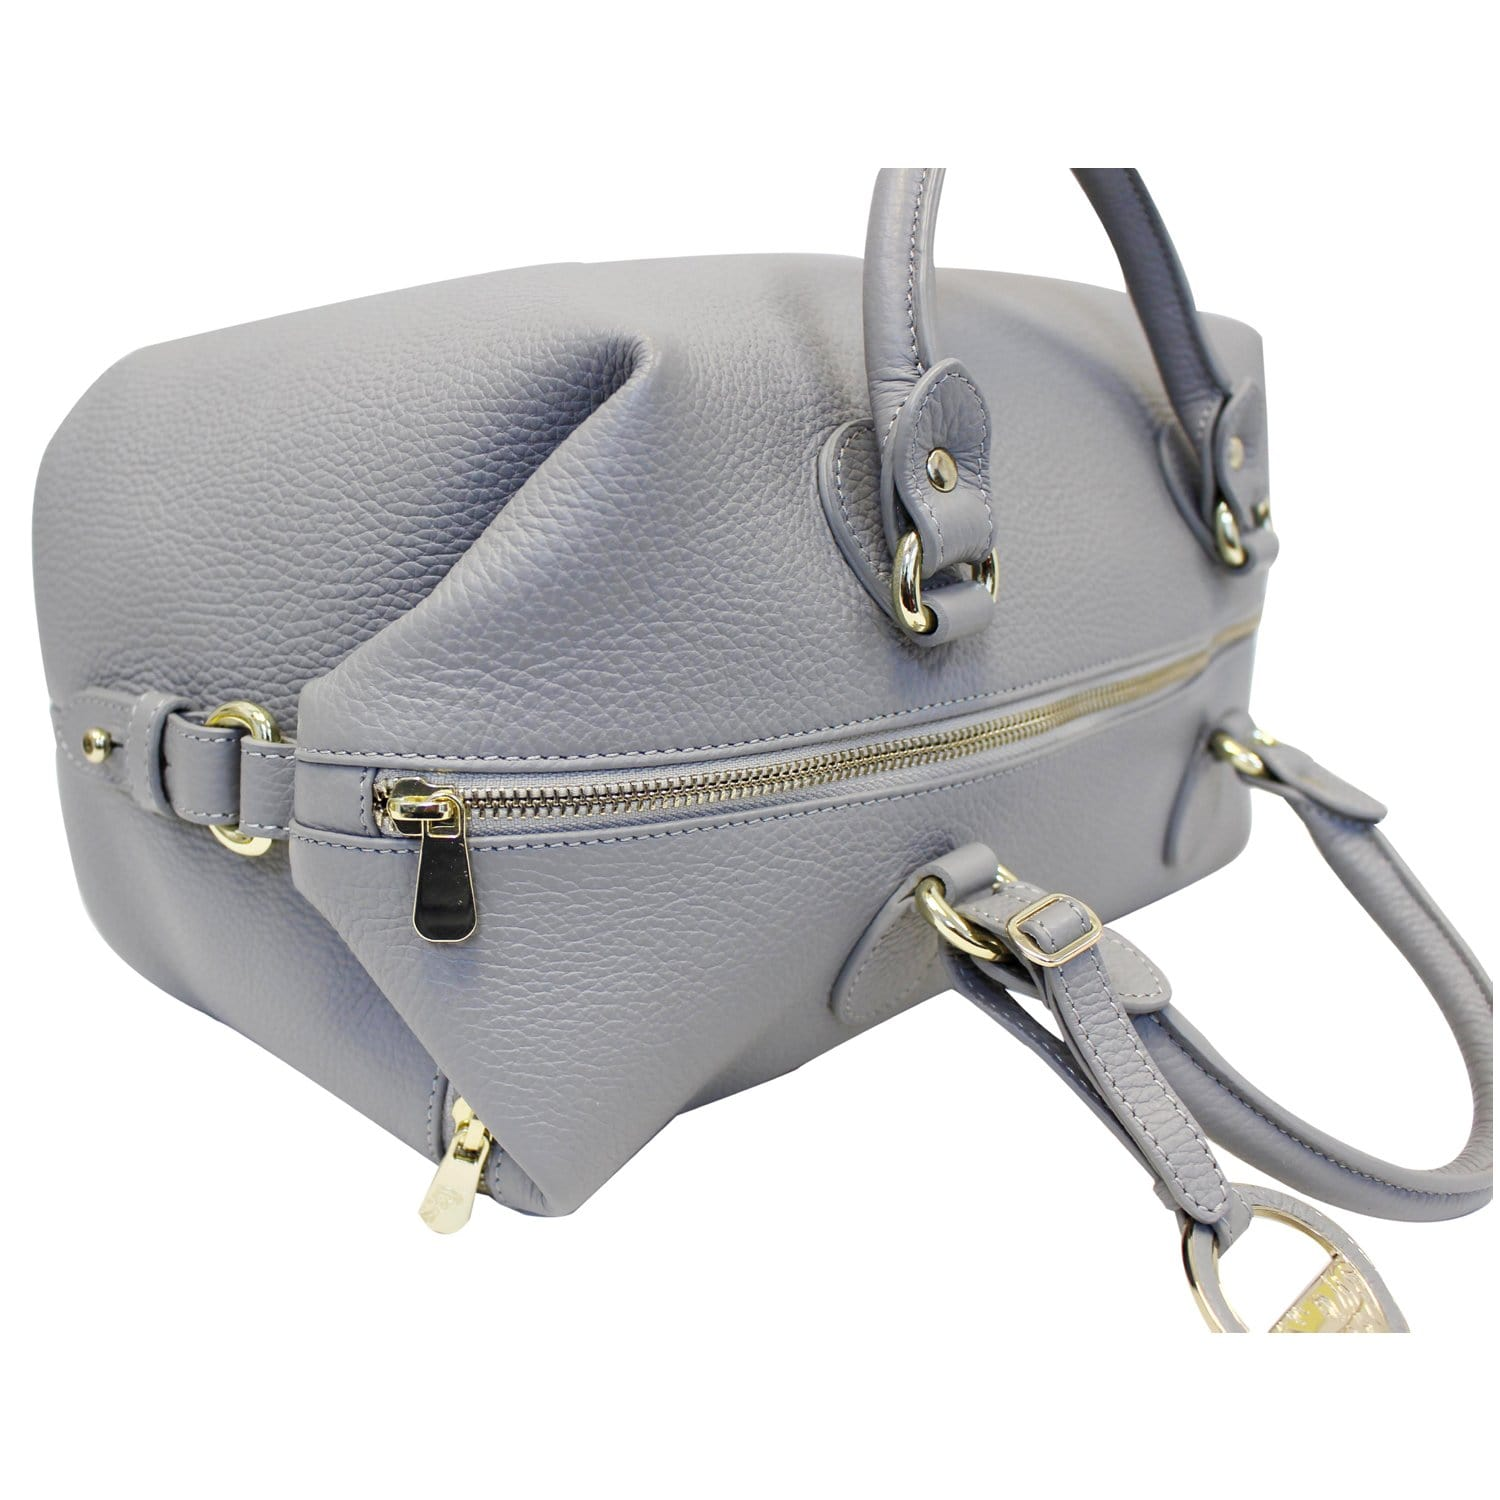 d241e0d808 Versace Collection Pebbled Leather Shoulder Bag Grey-US